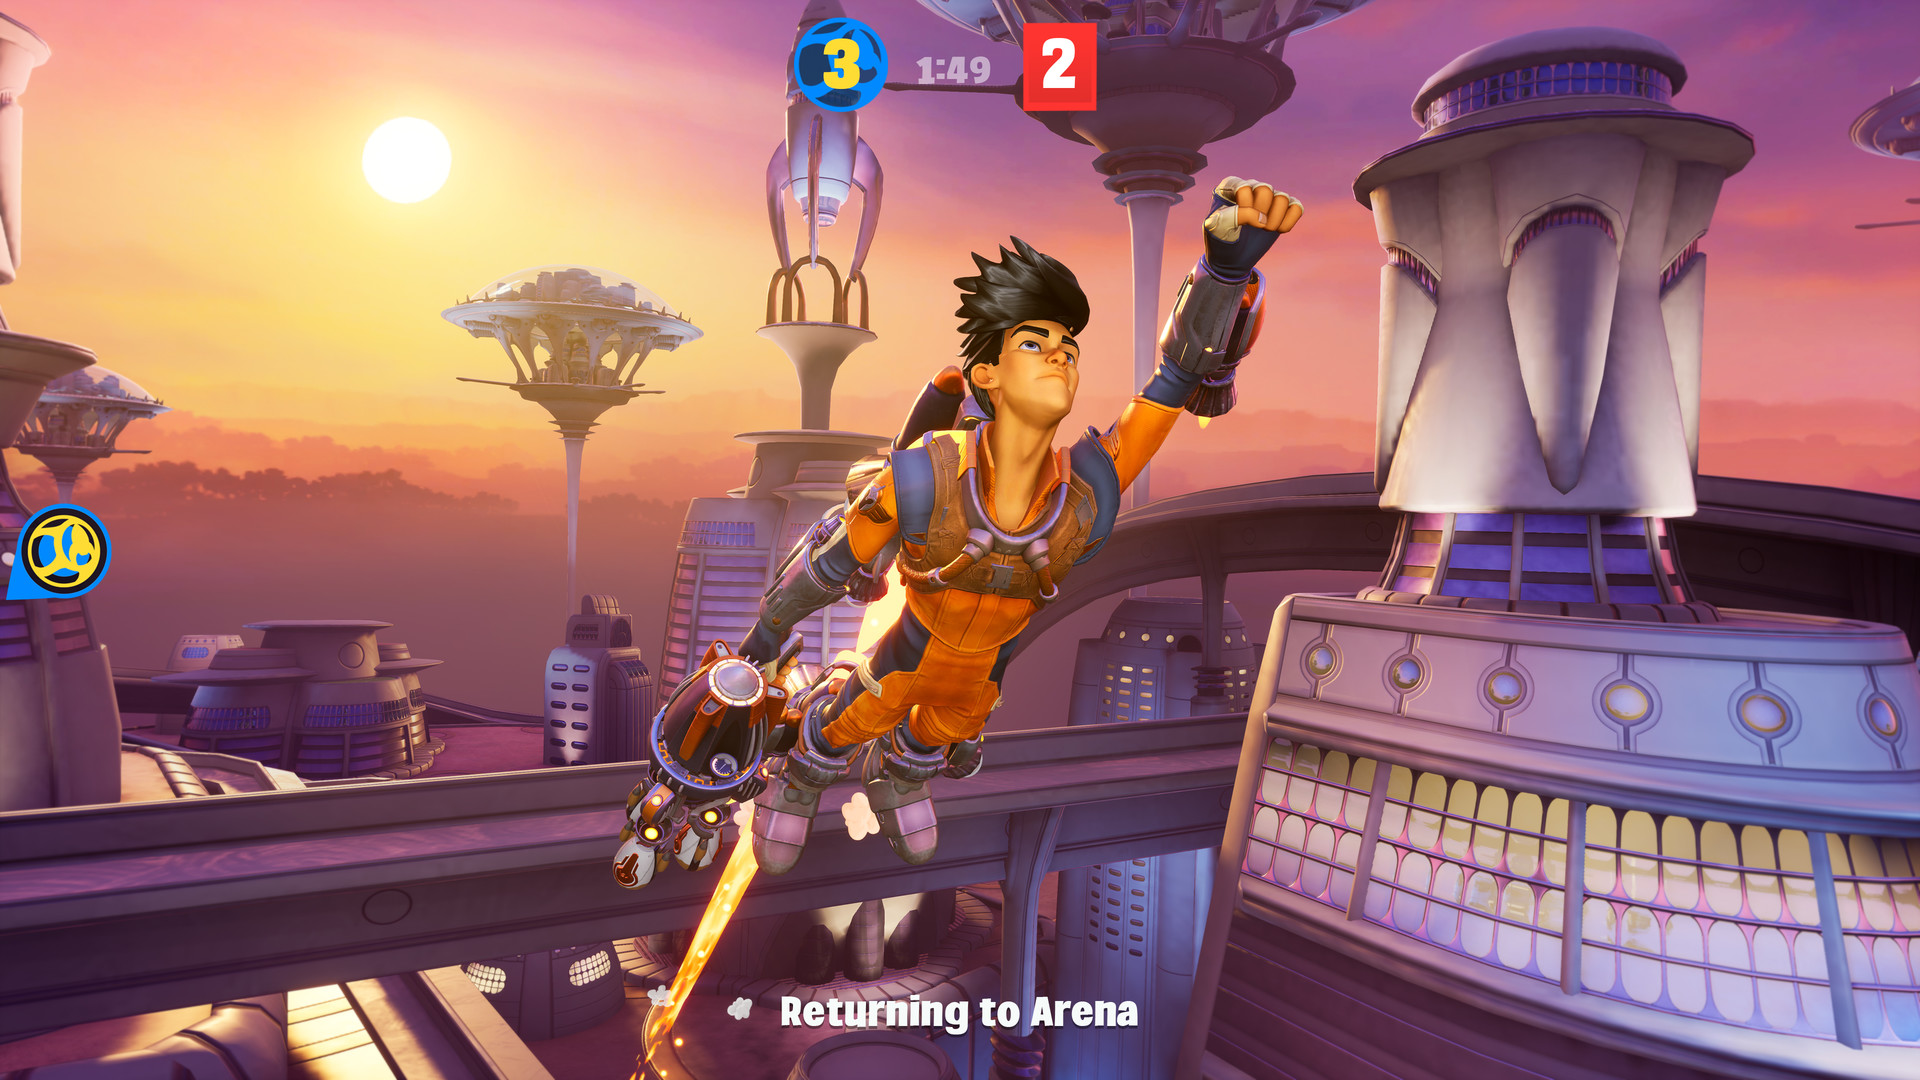 Arena Game Rocket Arena Beta On Steam